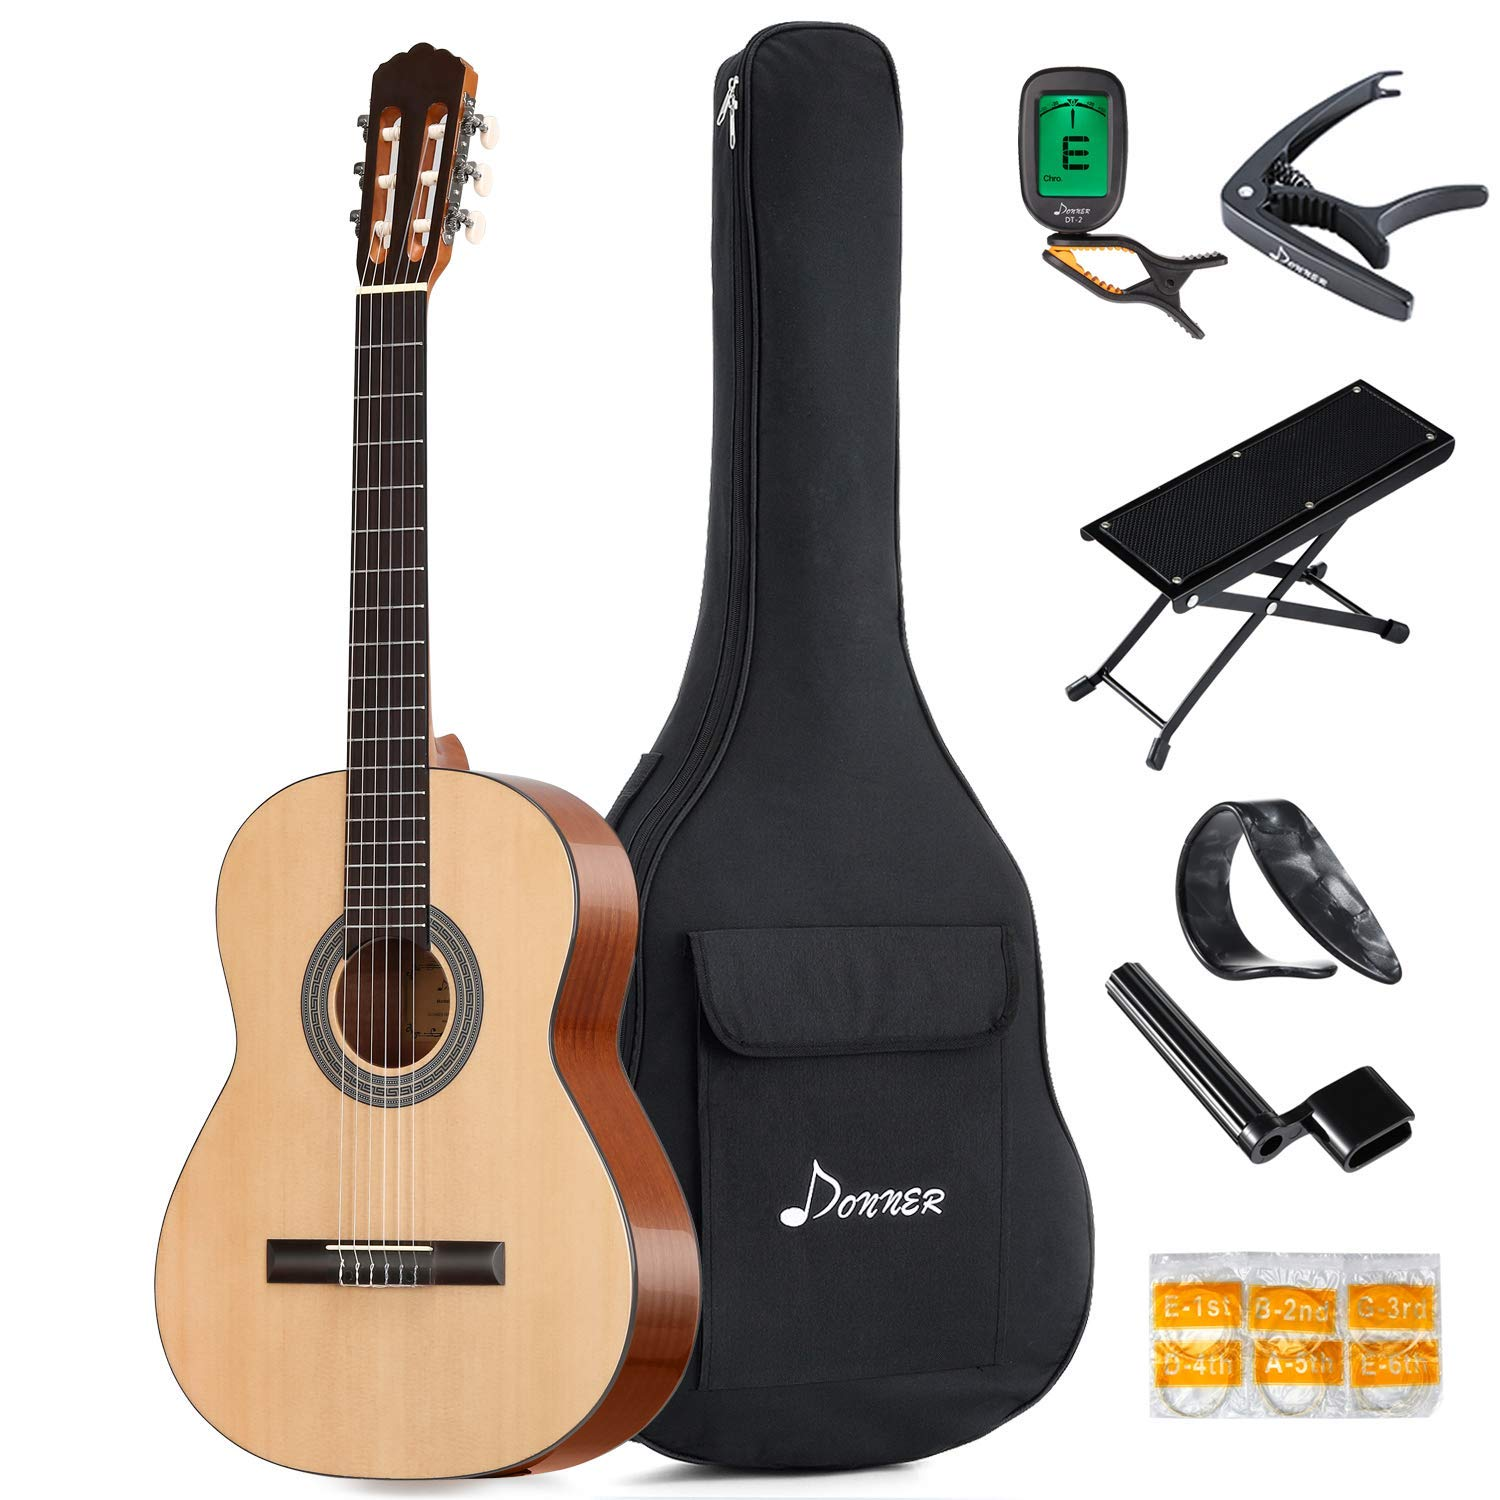 1e041515480 Get Quotations · Donner Full-size Classical Acoustic Guitar DCG-1 39 Inch  Beginner Guitar Package Spruce